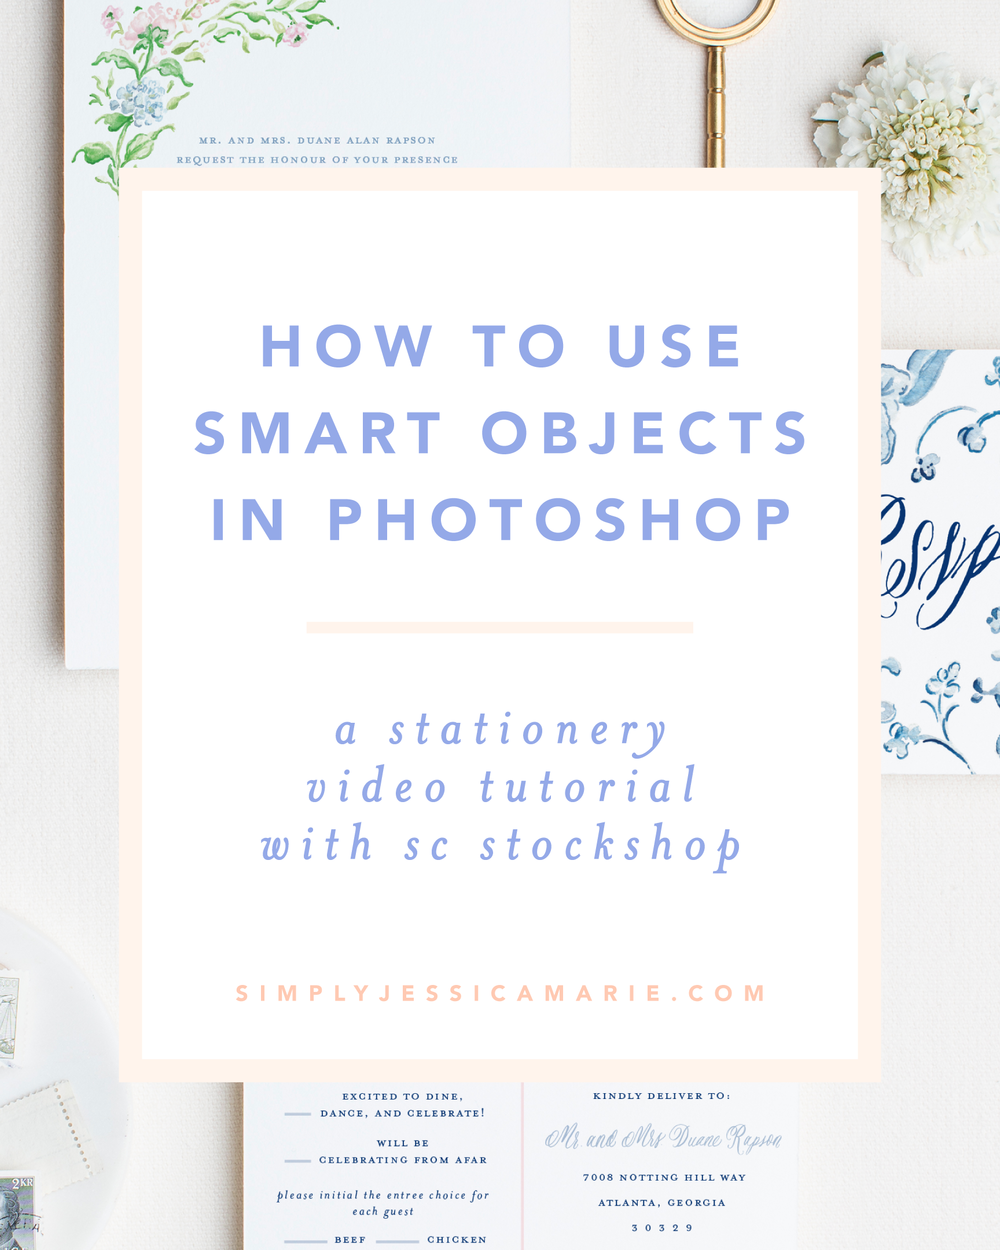 How to Use Smart Objects in Photoshop | A Stationery Tutorial | Video Tutorial by Simply Jessica Marie for SC Stockshop